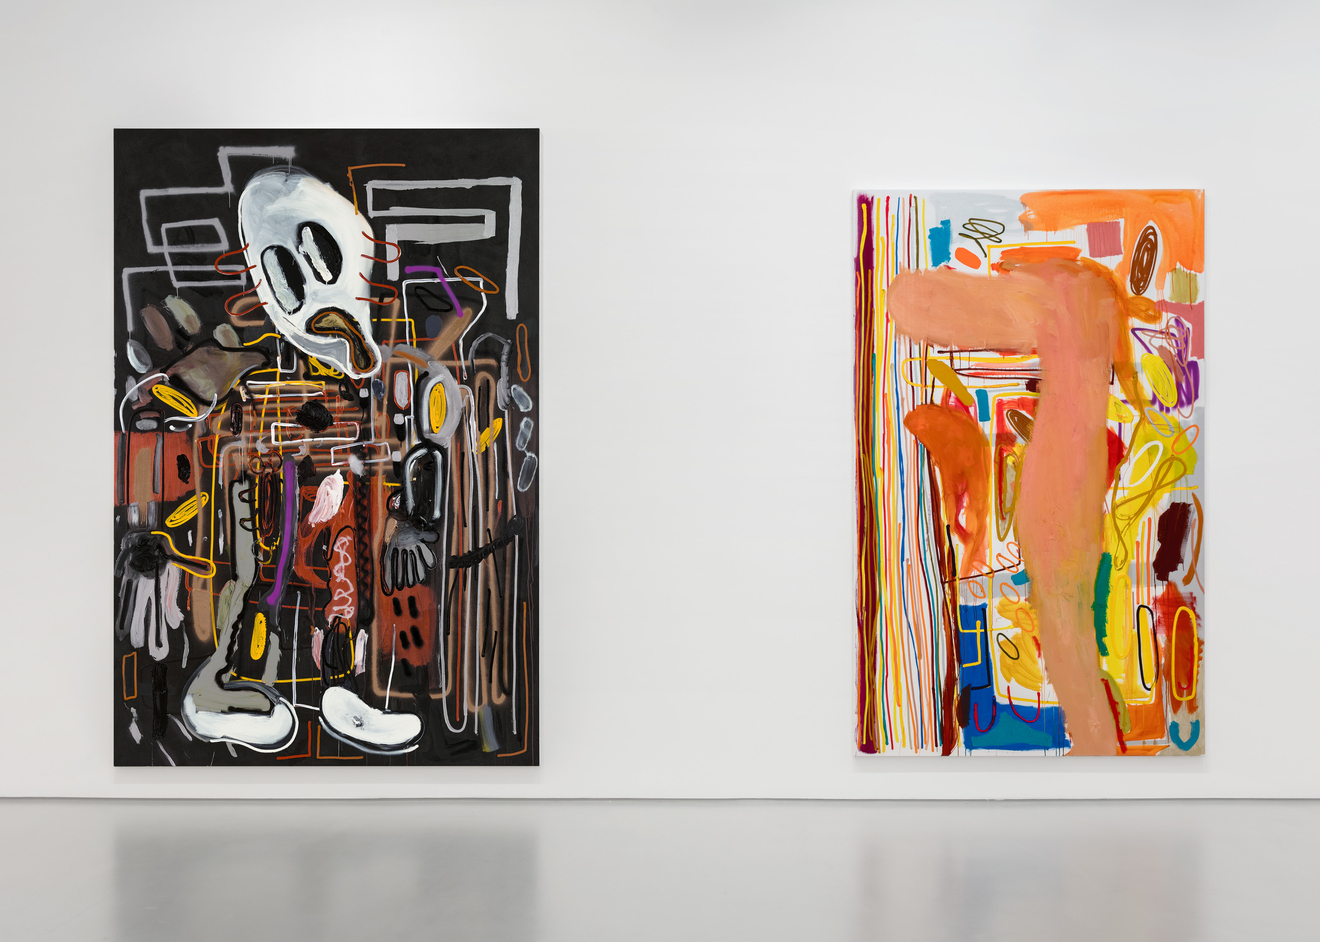 Installation view: André Butzler at Max Hetzler Paris. Courtesy of the artist and Max Hetzler. Photo: Claire Dorn